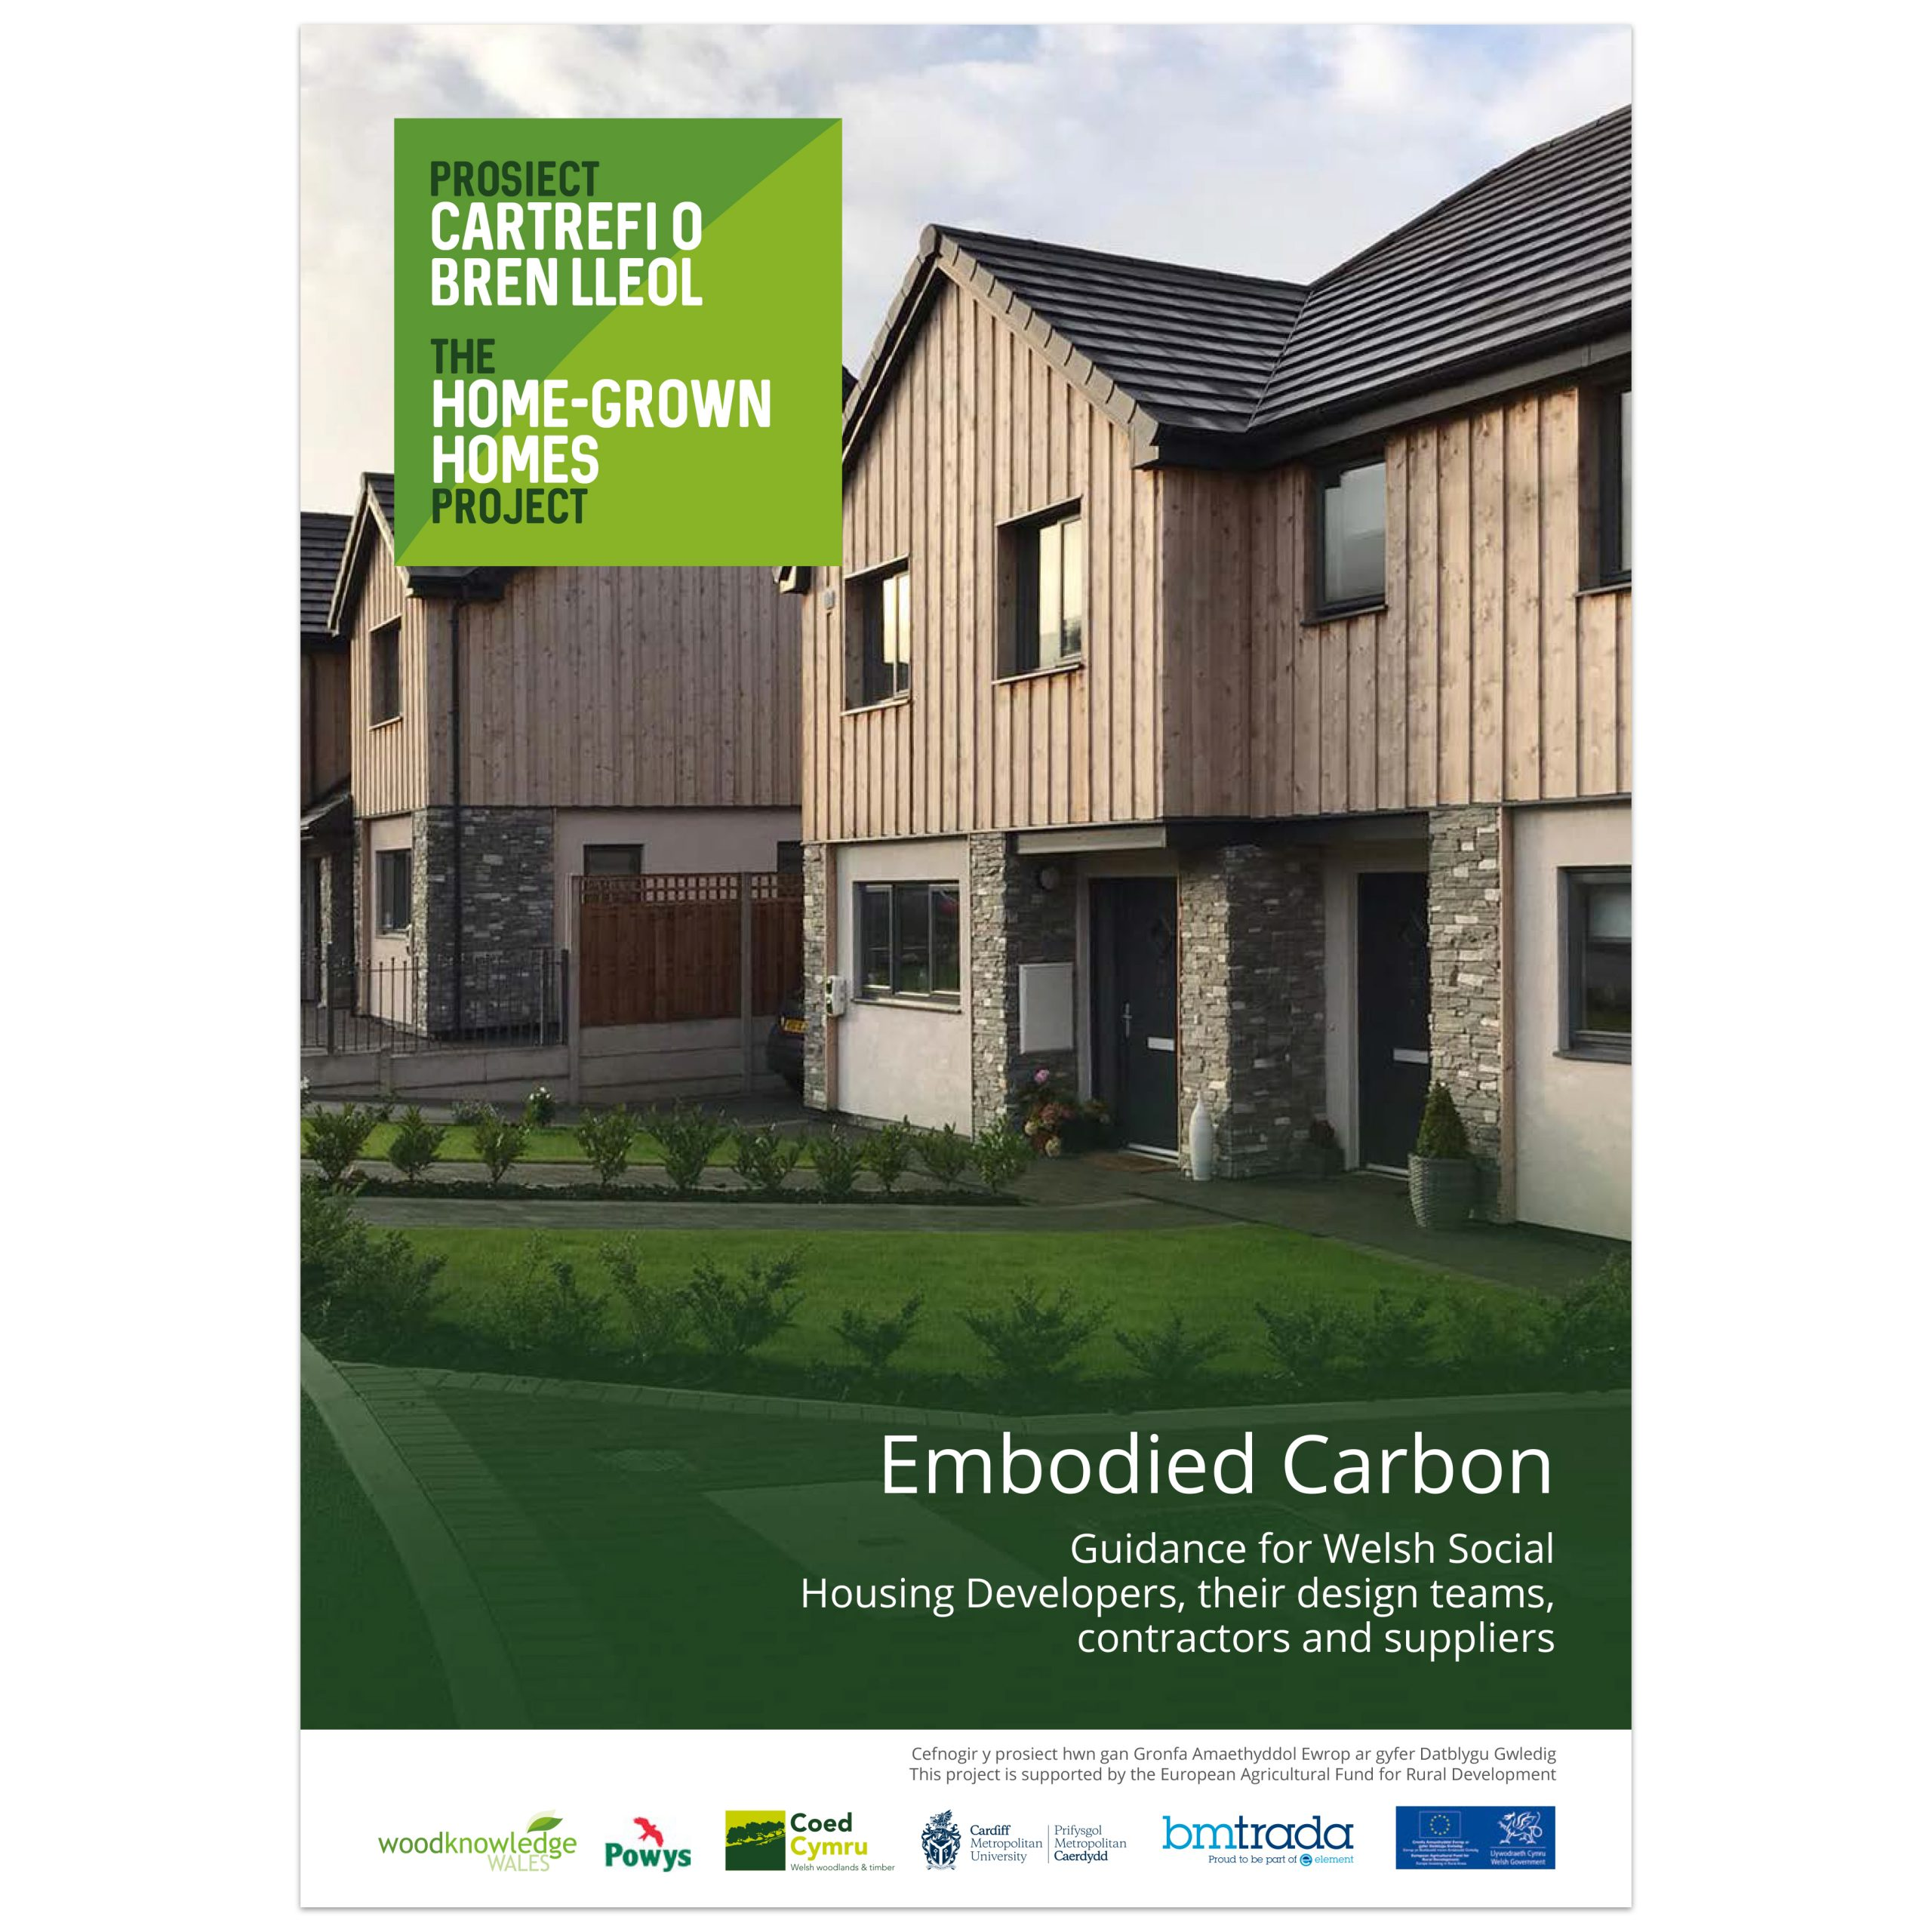 New embodied carbon guidance for social housing developers